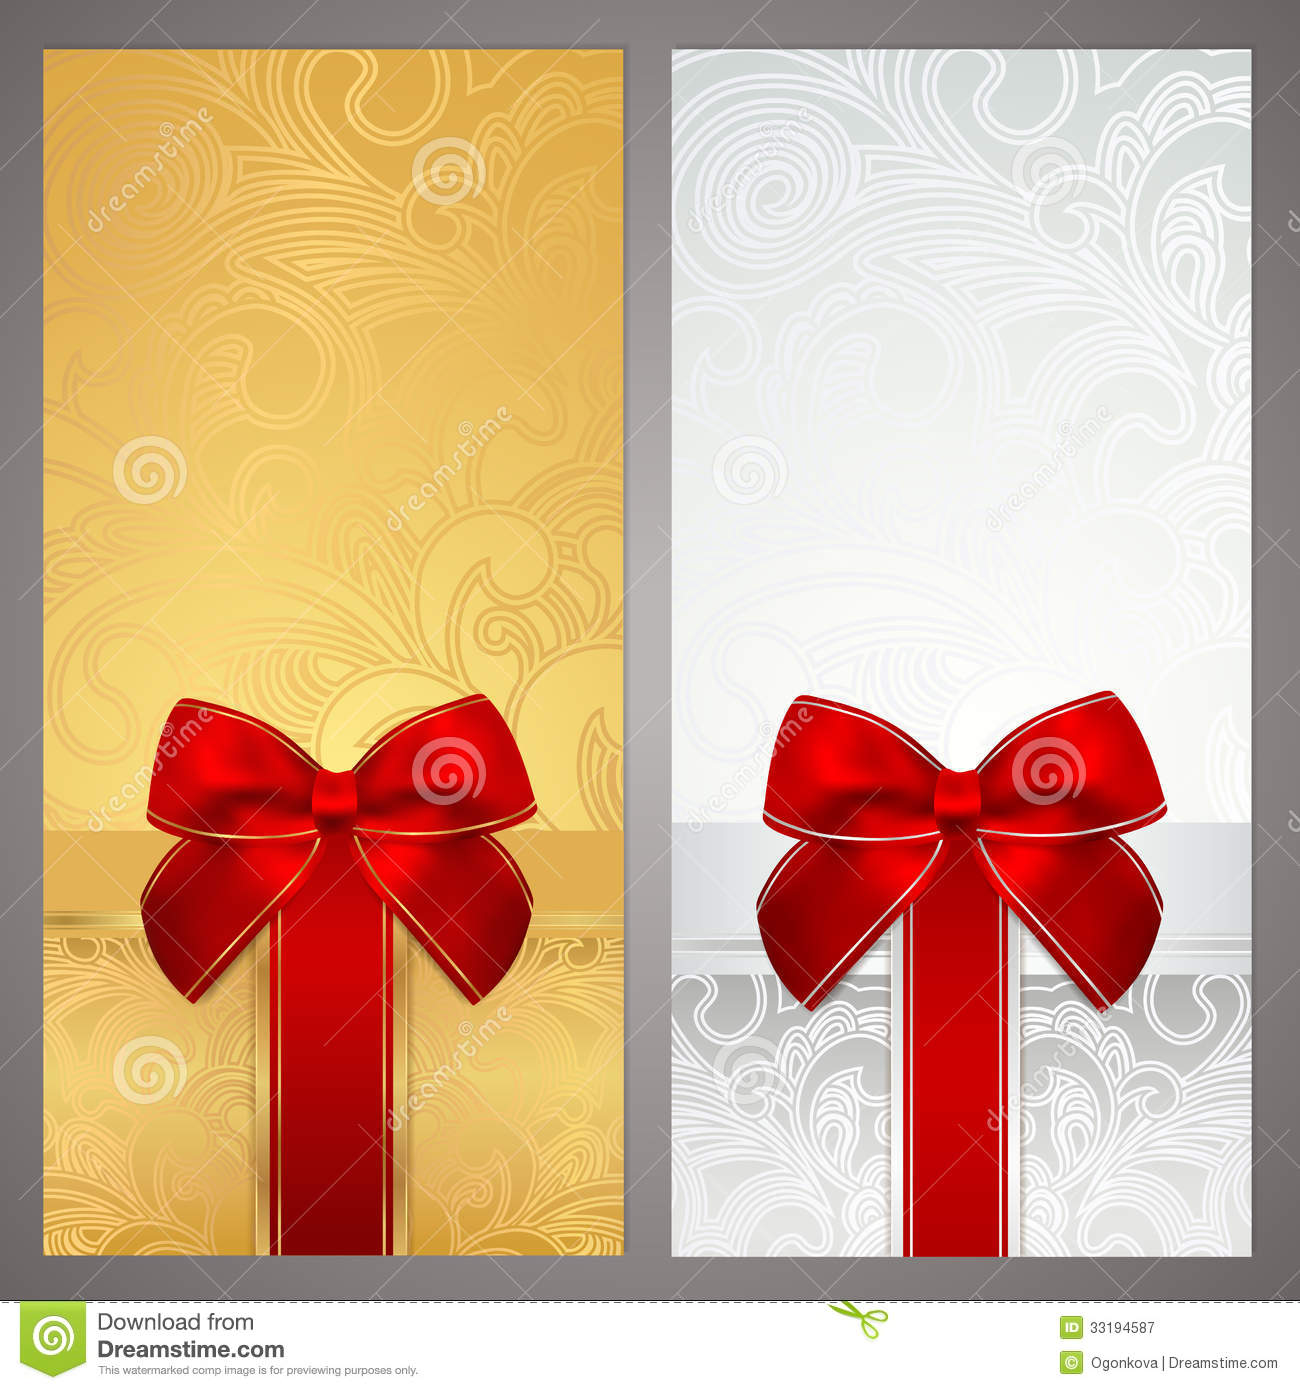 Voucher Gift Certificate Coupon Boxes Bow Royalty Free – Christmas Gift Certificates Free